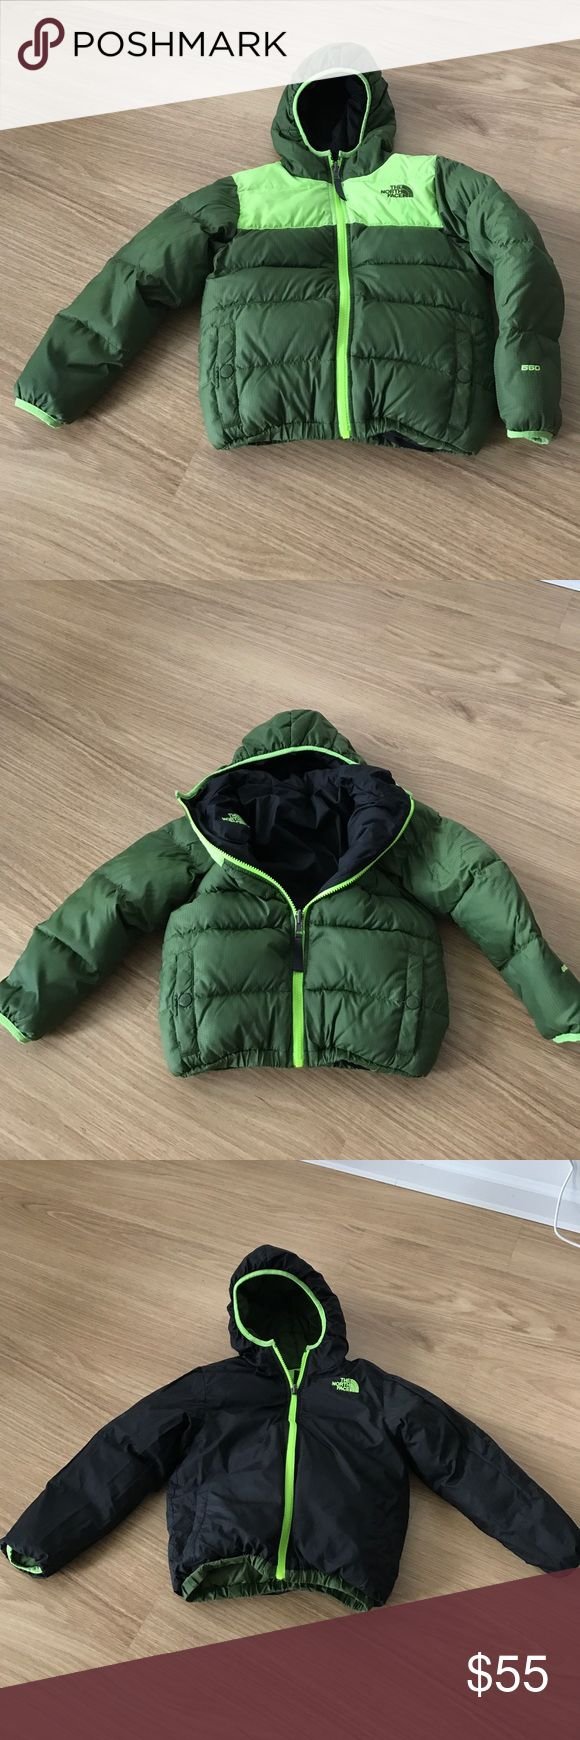 Boys THE NORTH FACE reversible 550 filer sz XS 6 Very gentle wear boy winter jacket THE NORTH FACE black / green green bright color filers 550 boys size XS TP (6) The North Face Jackets & Coats Puffers